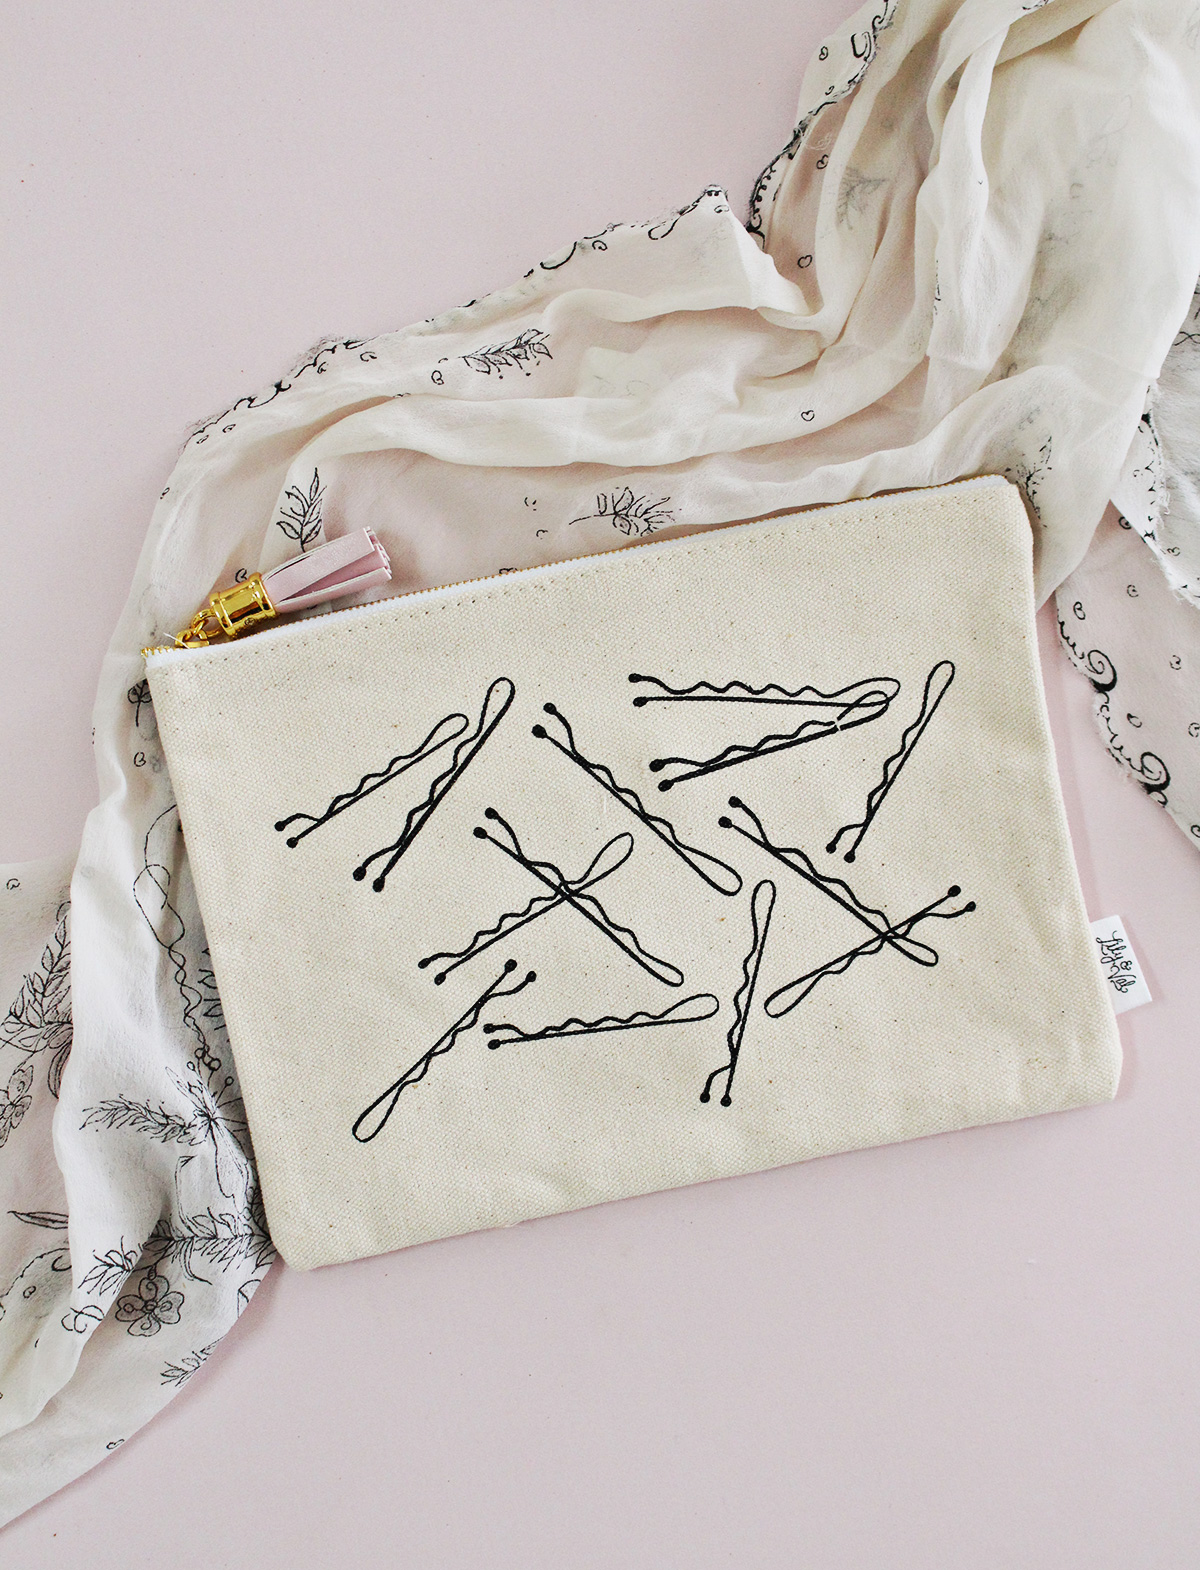 Never lose those bobby pins again with this adorable canvas zippered pouch by Lily & Val